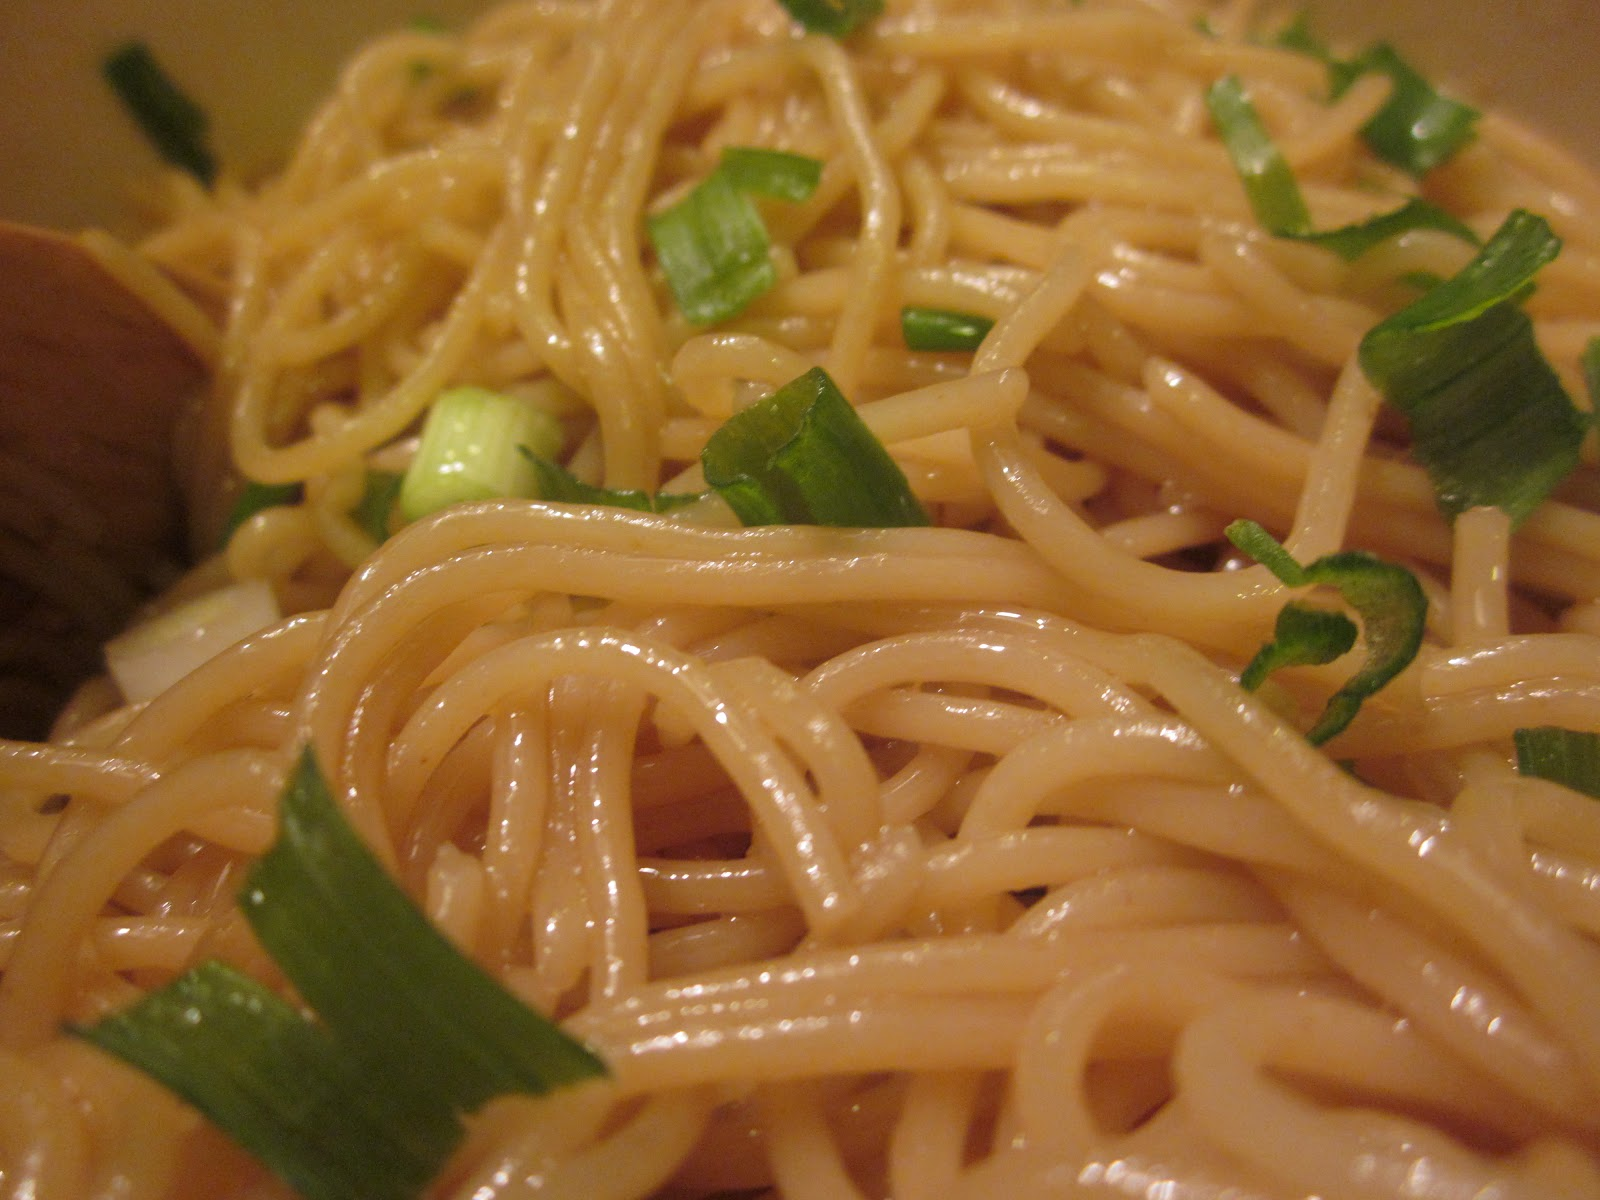 lovely clear and sweet.: Sesame Noodles